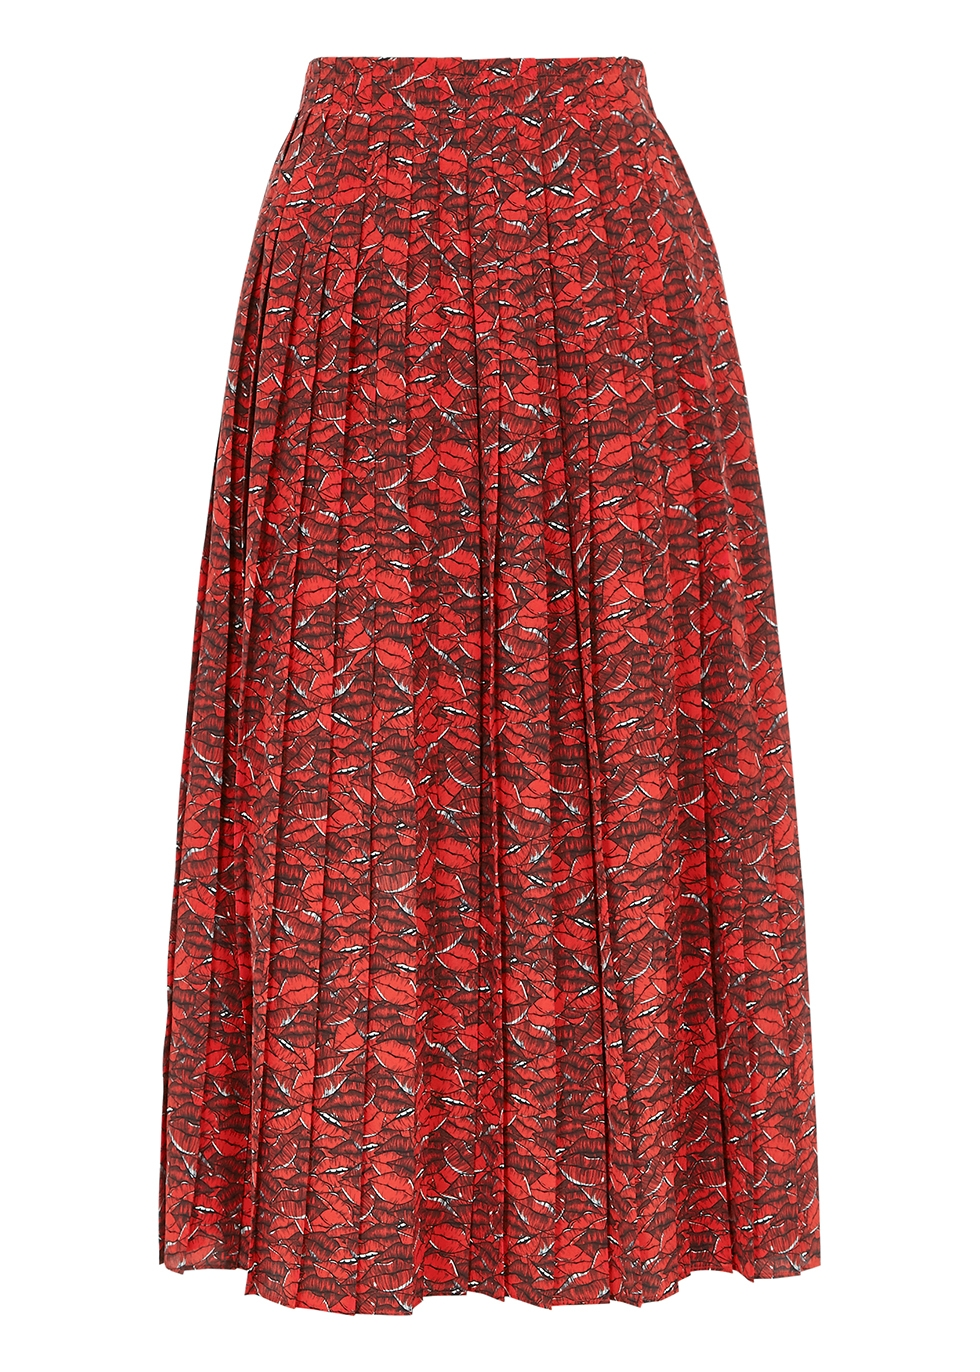 Valentino RED PRINTED SILK CREPE DE CHINE MIDI SKIRT